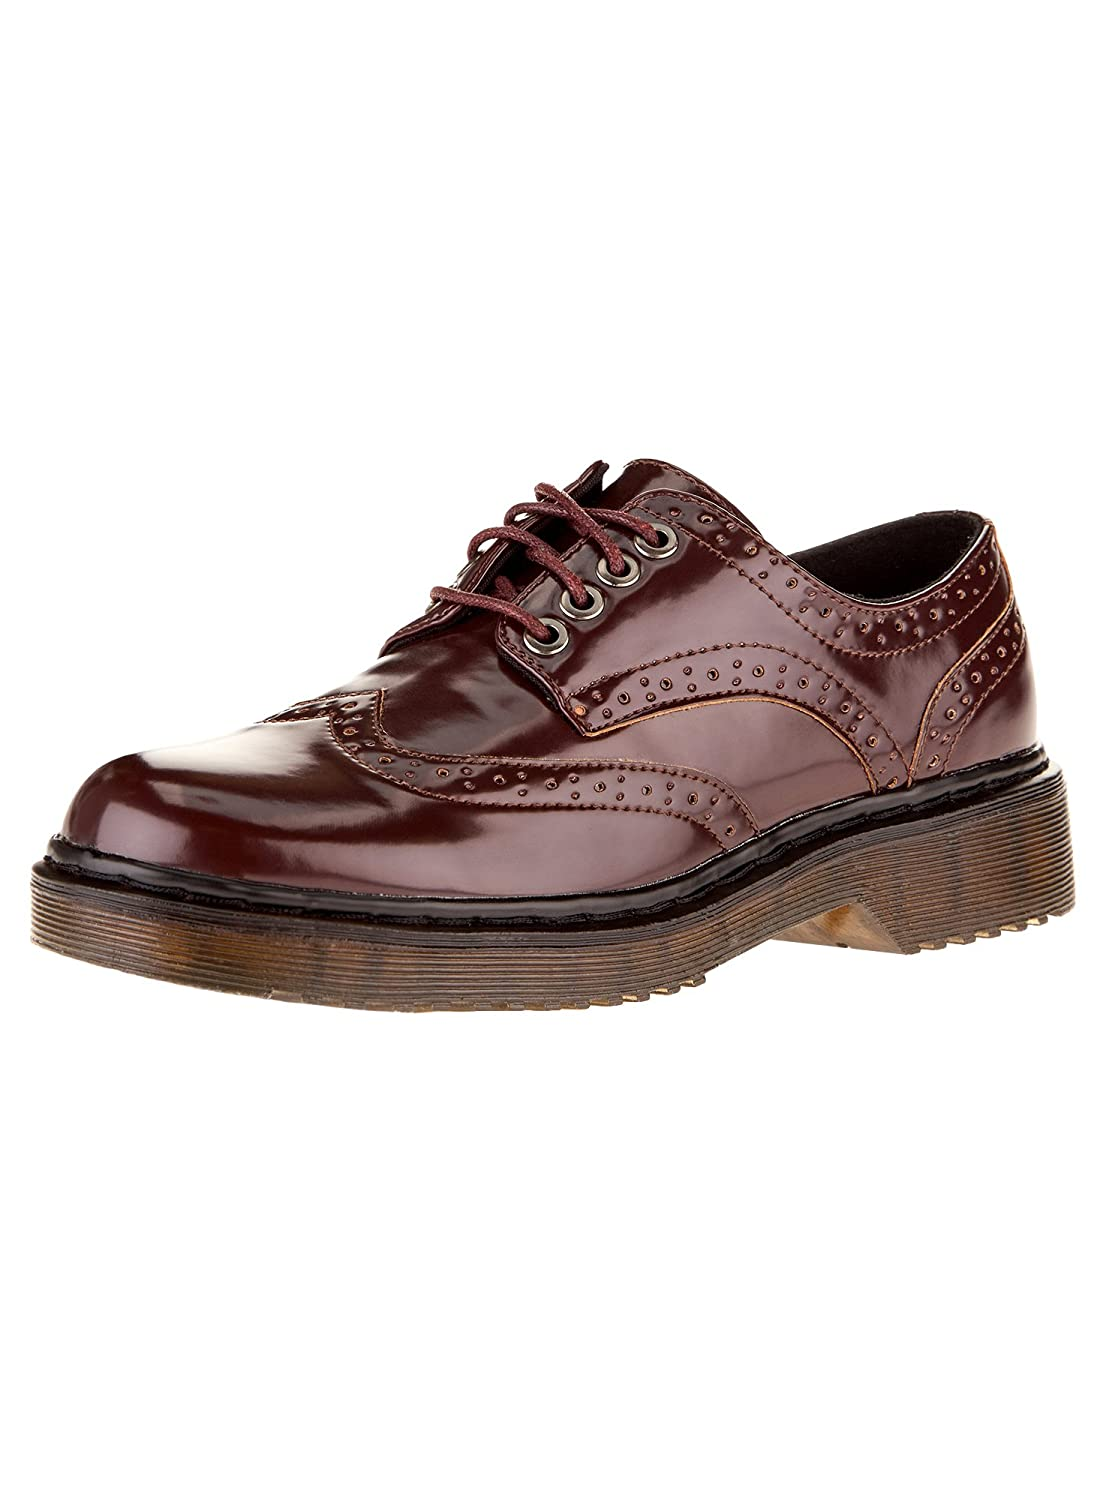 oodji Collection Women's Faux Leather Oxford Shoes RIFICZECH s.r.o. 92OOH001W